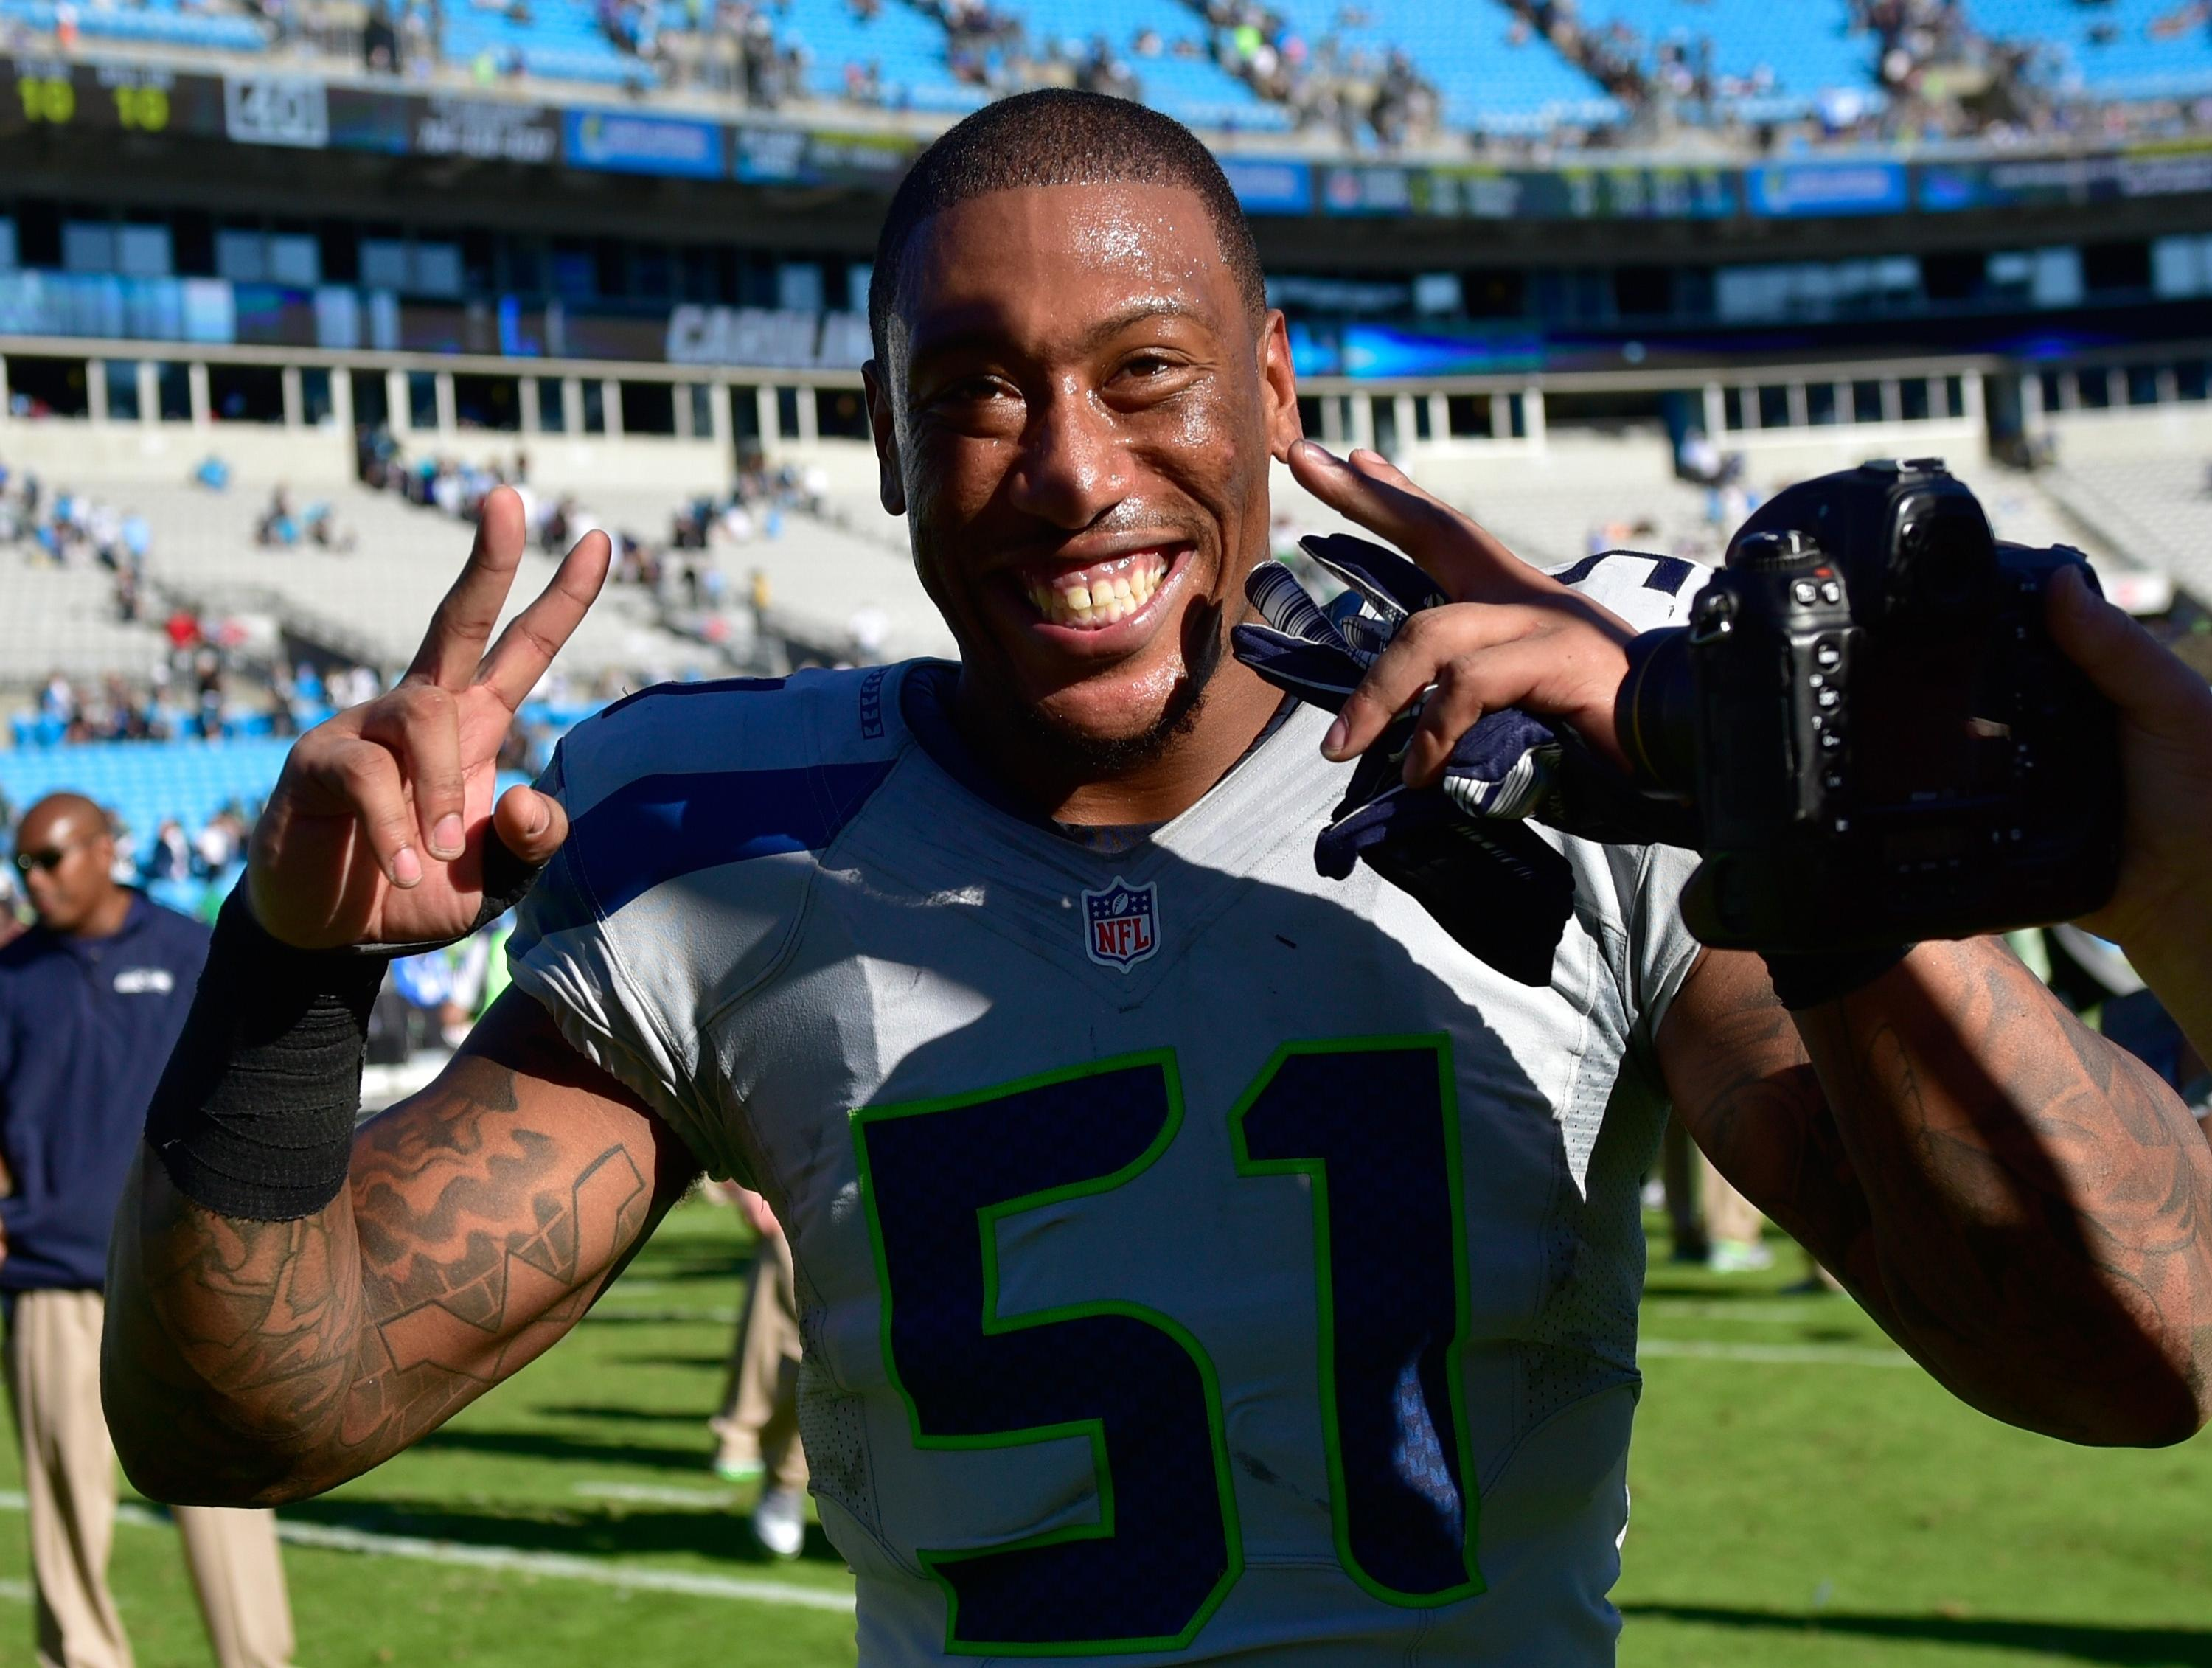 Bruce Irvin regrettable April Fools Day joke is about ting a DUI